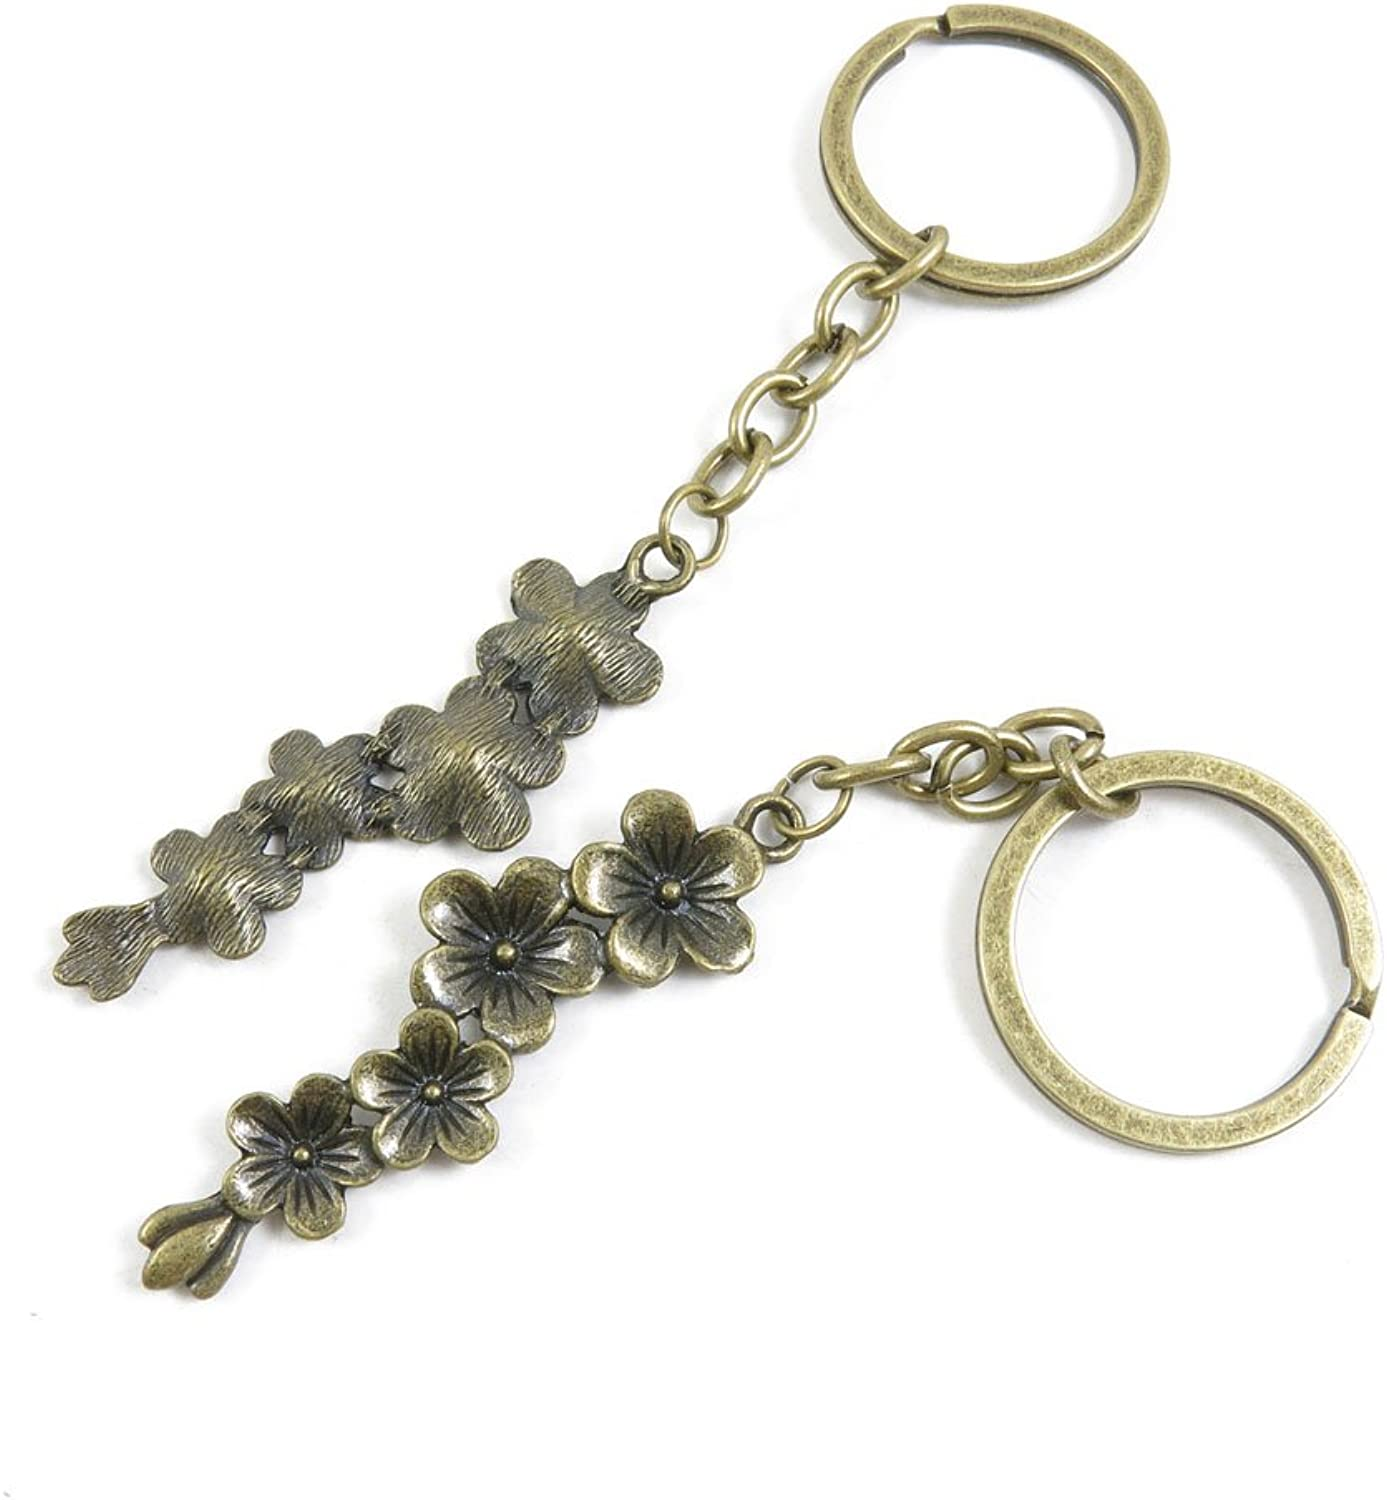 130 Pieces Fashion Jewelry Keyring Keychain Door Car Key Tag Ring Chain Supplier Supply Wholesale Bulk Lots P5BU4 Cherry Blossoms